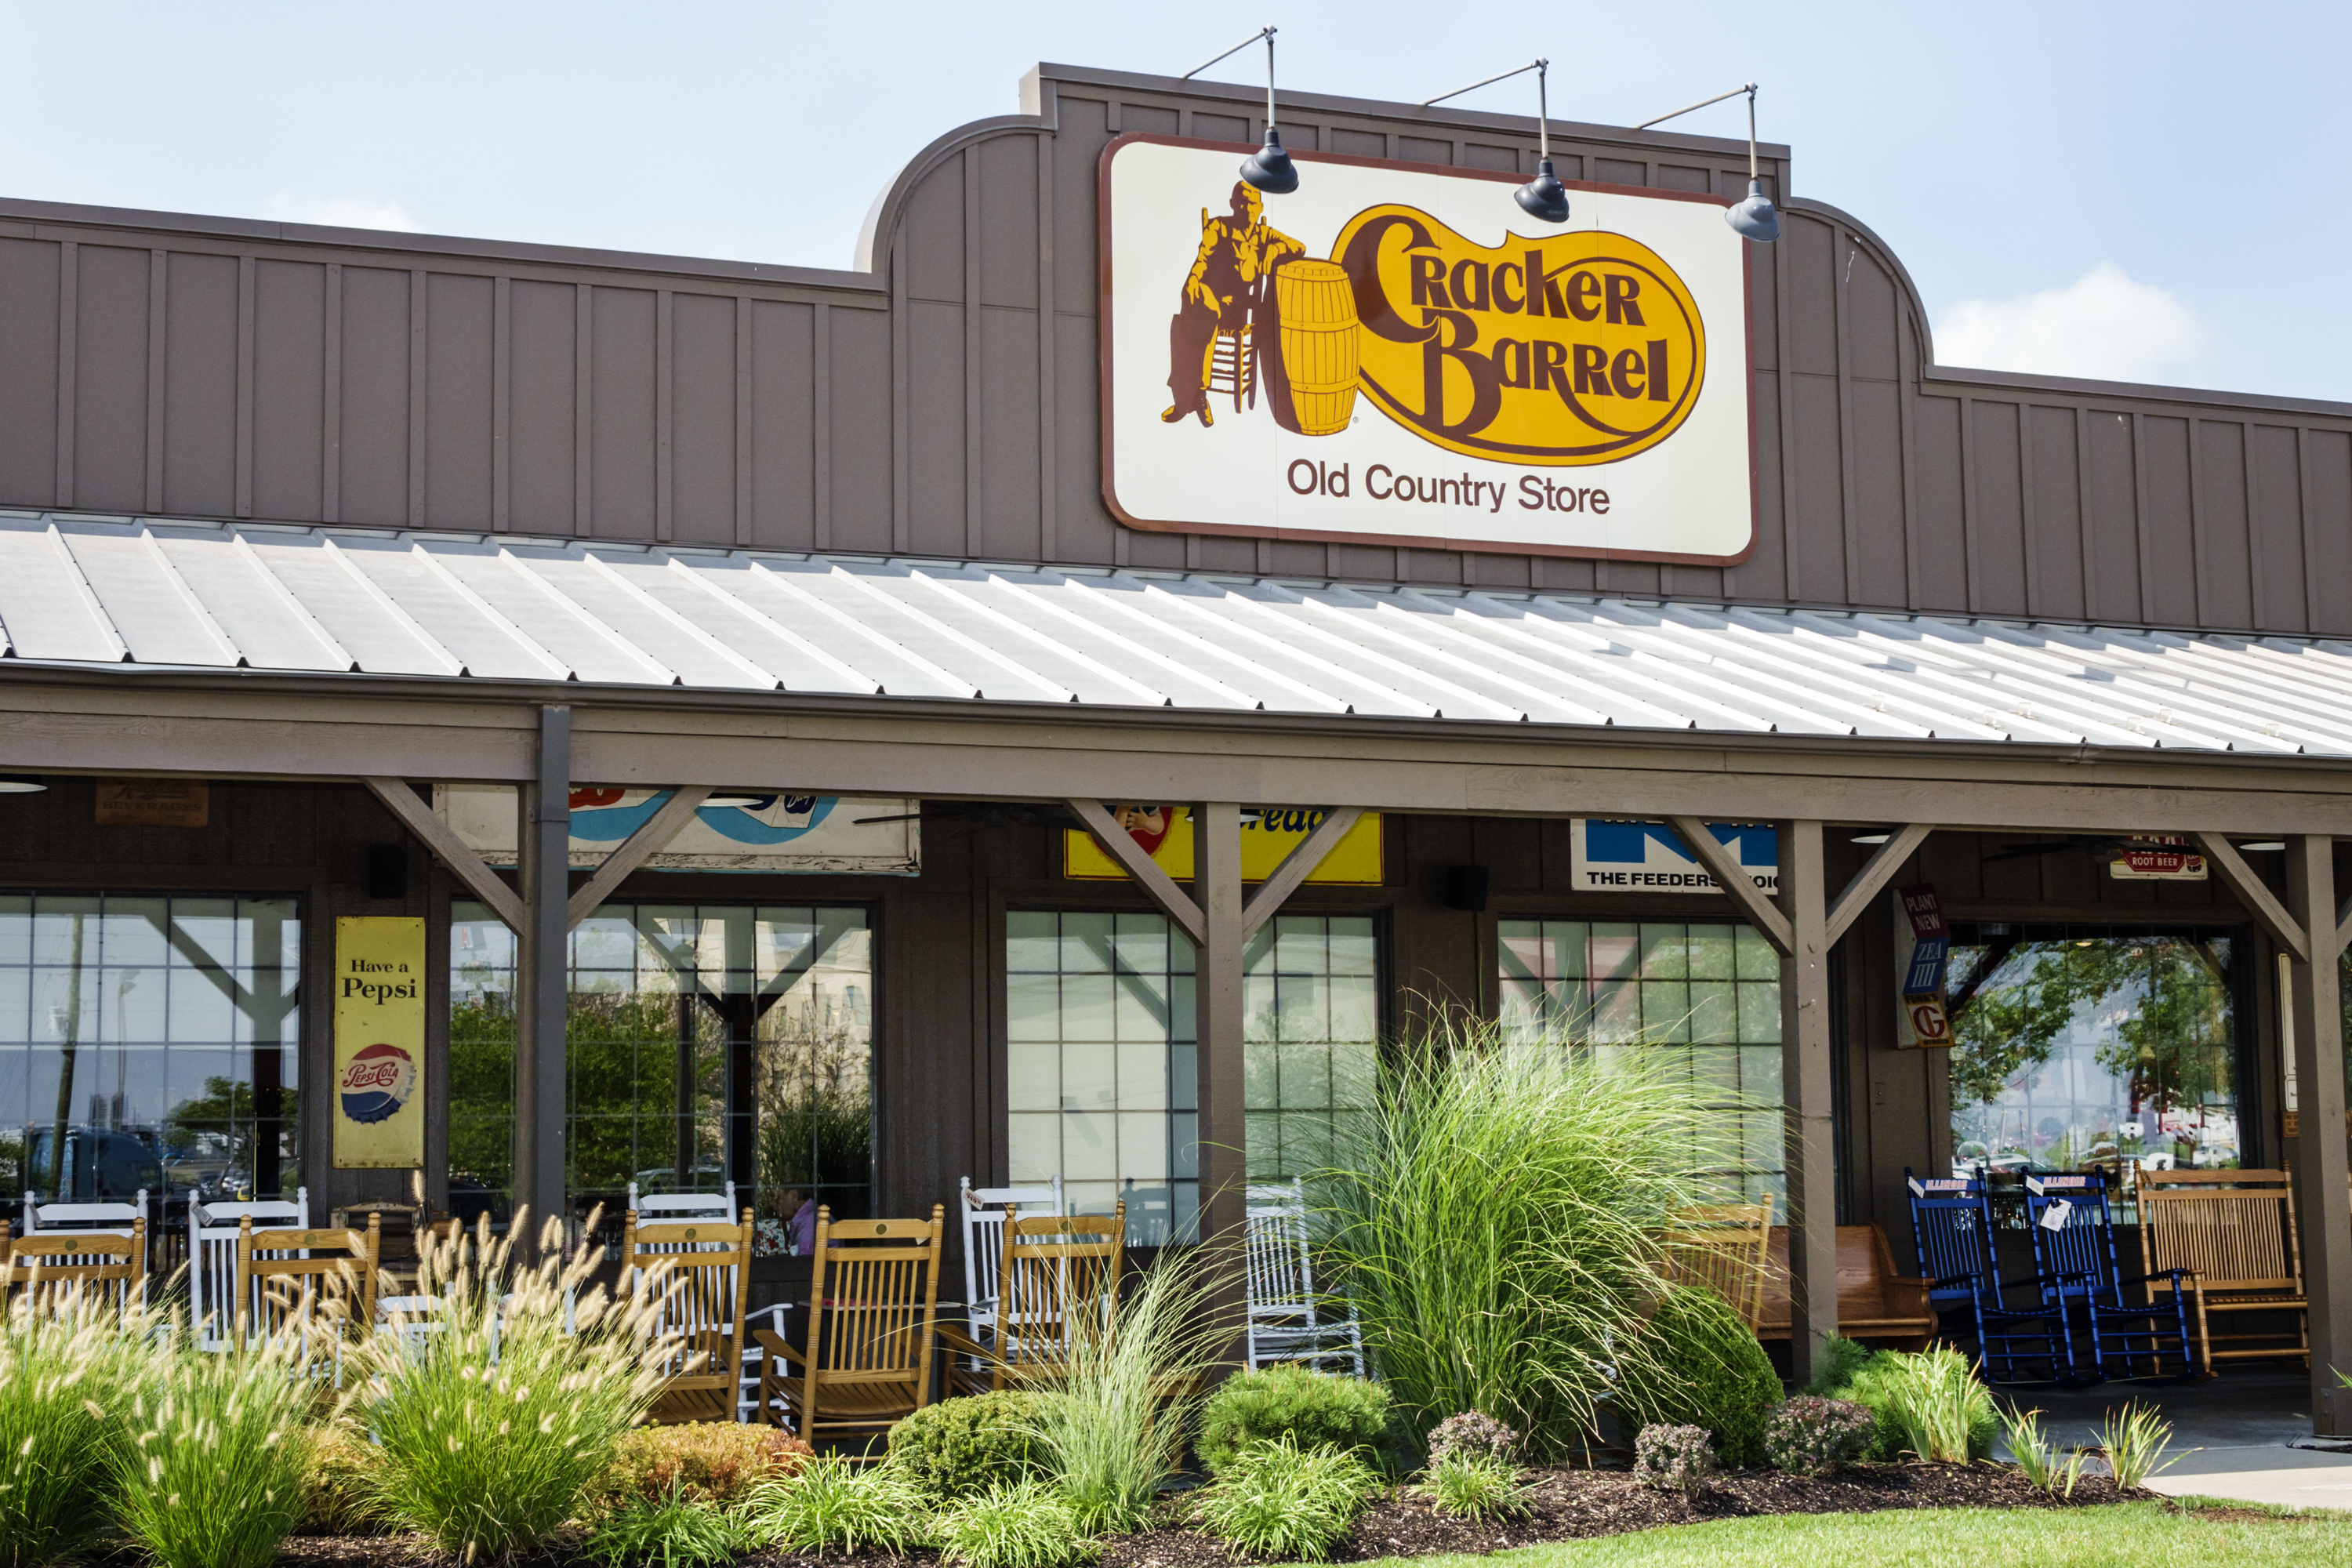 cracker barrel rocking chair reviews mid century club what restaurants are open on christmas day and eve 2018